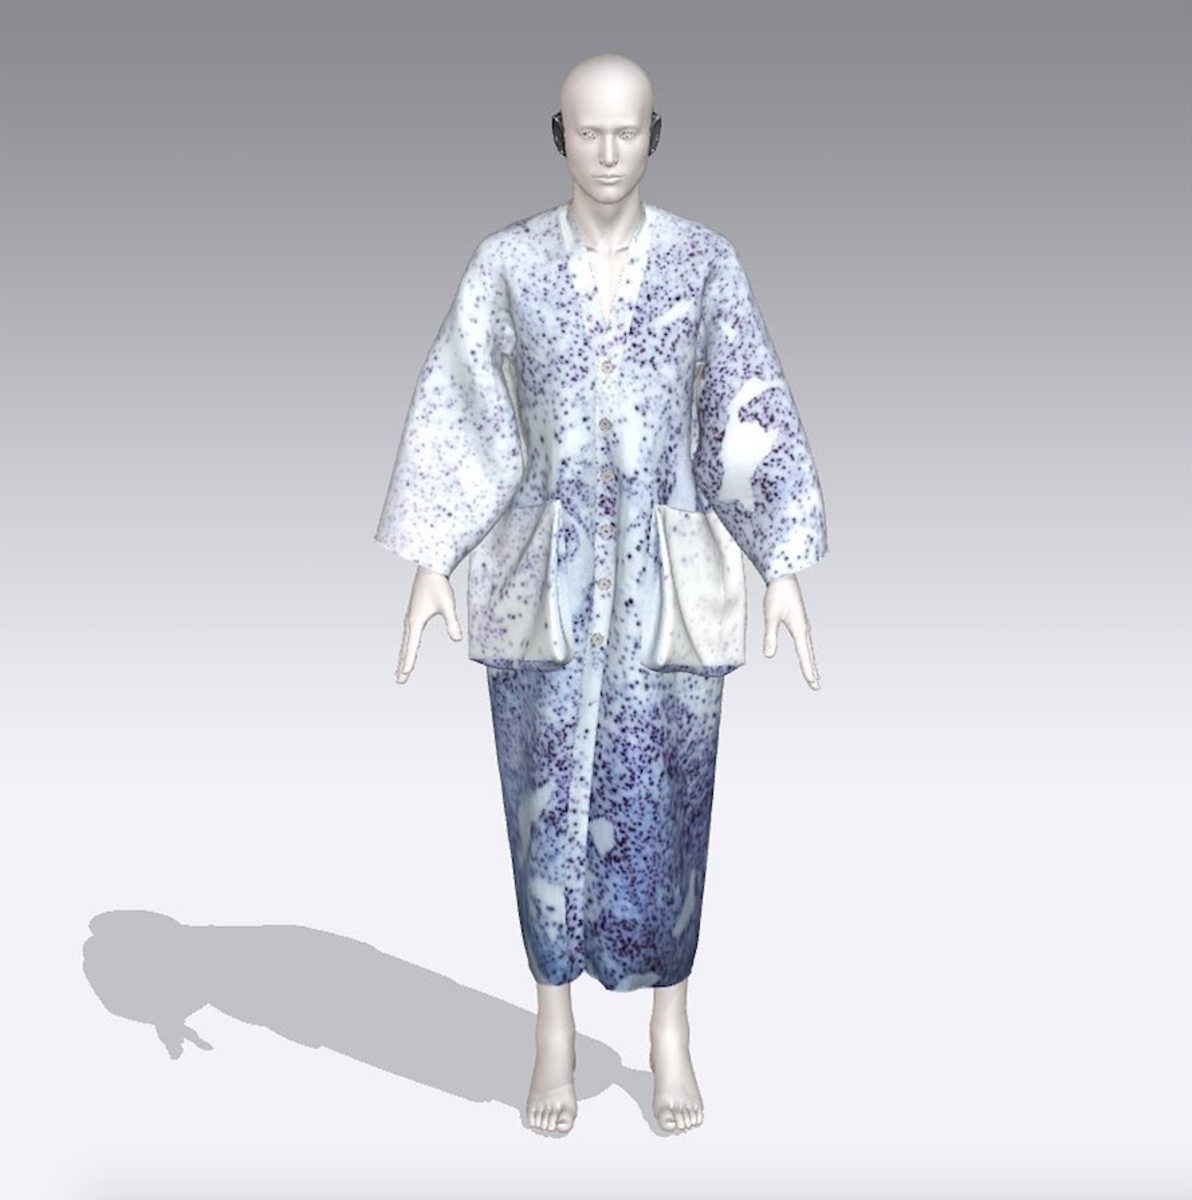 3D rendering of a garment biofabricated using pigment-producing bacteria, by Faber Futures in collaboration with Ginkgo BioWorks. Photo: Atacac.